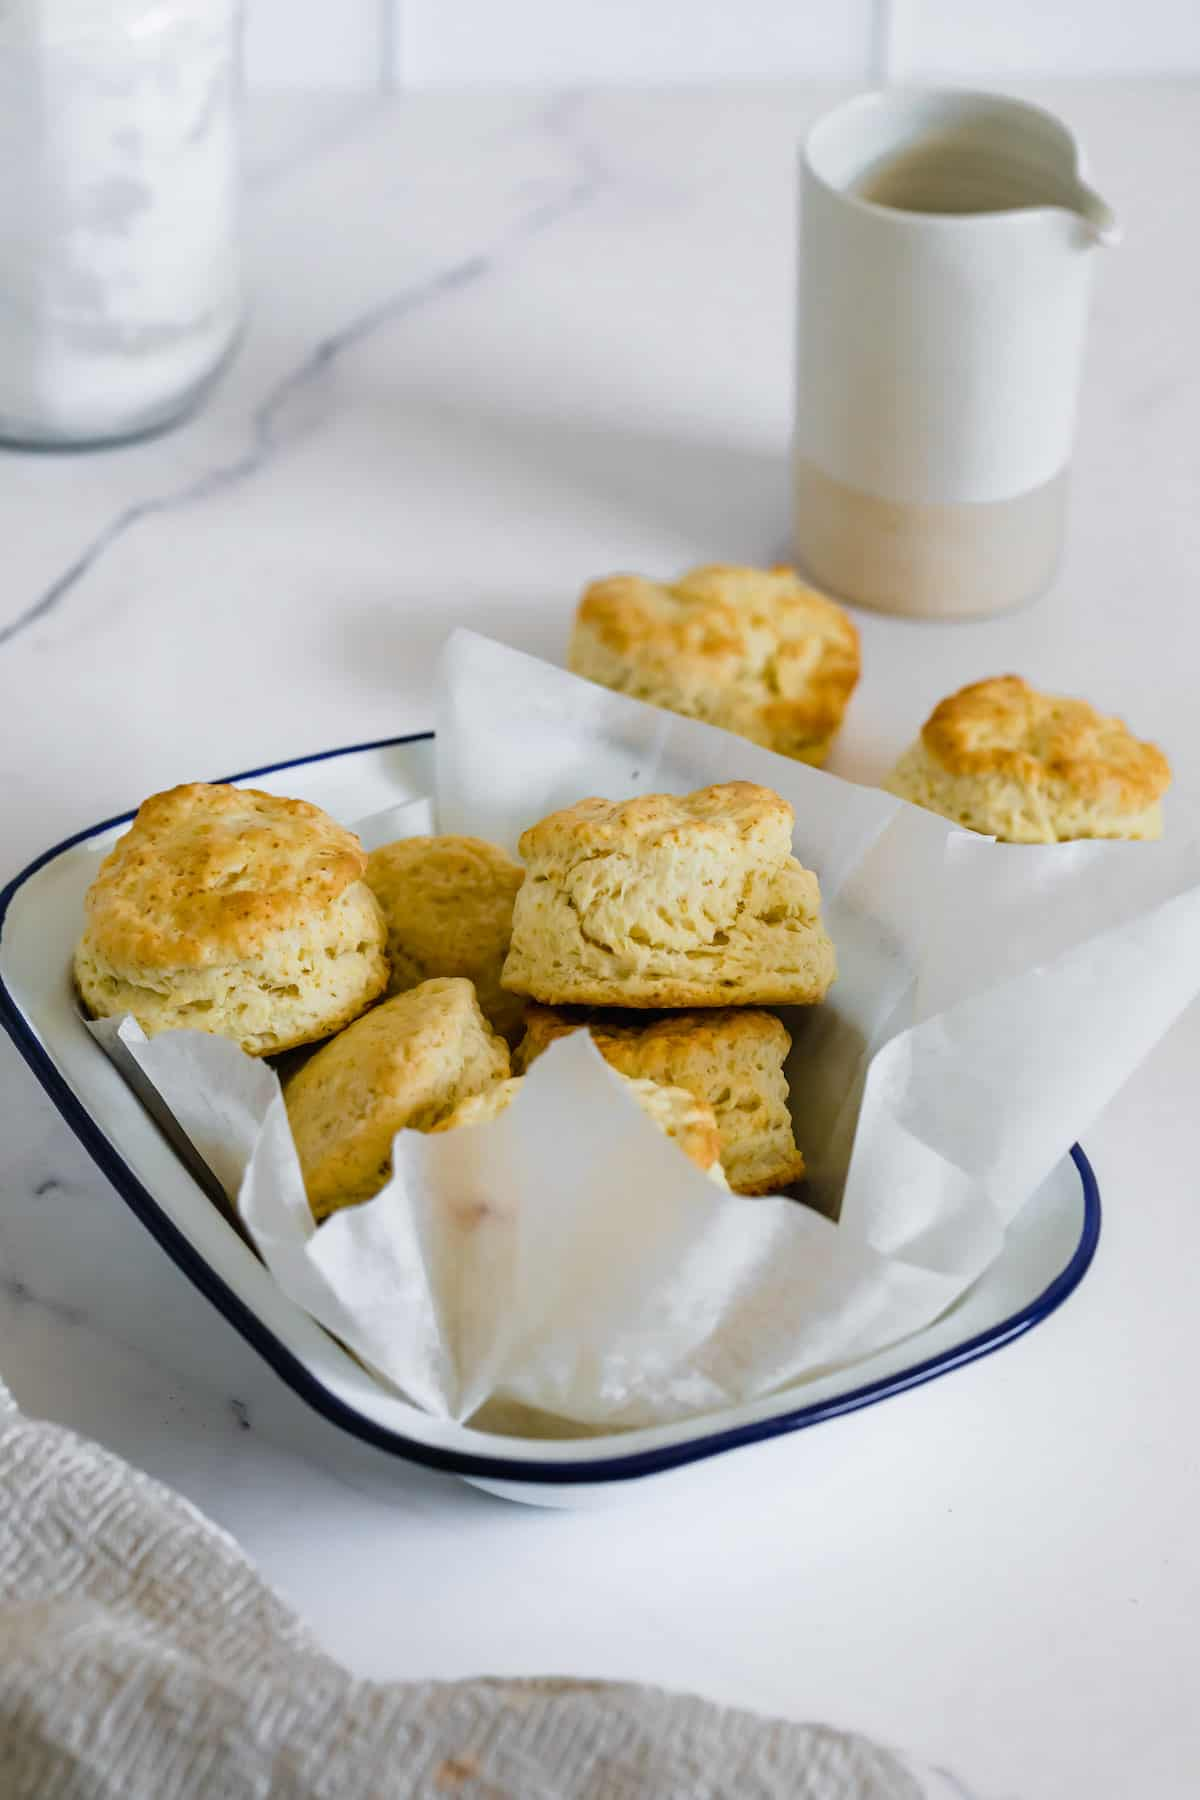 A Bowl Lined with Parchment Paper Containing Homemade Gluten-Free Biscuits